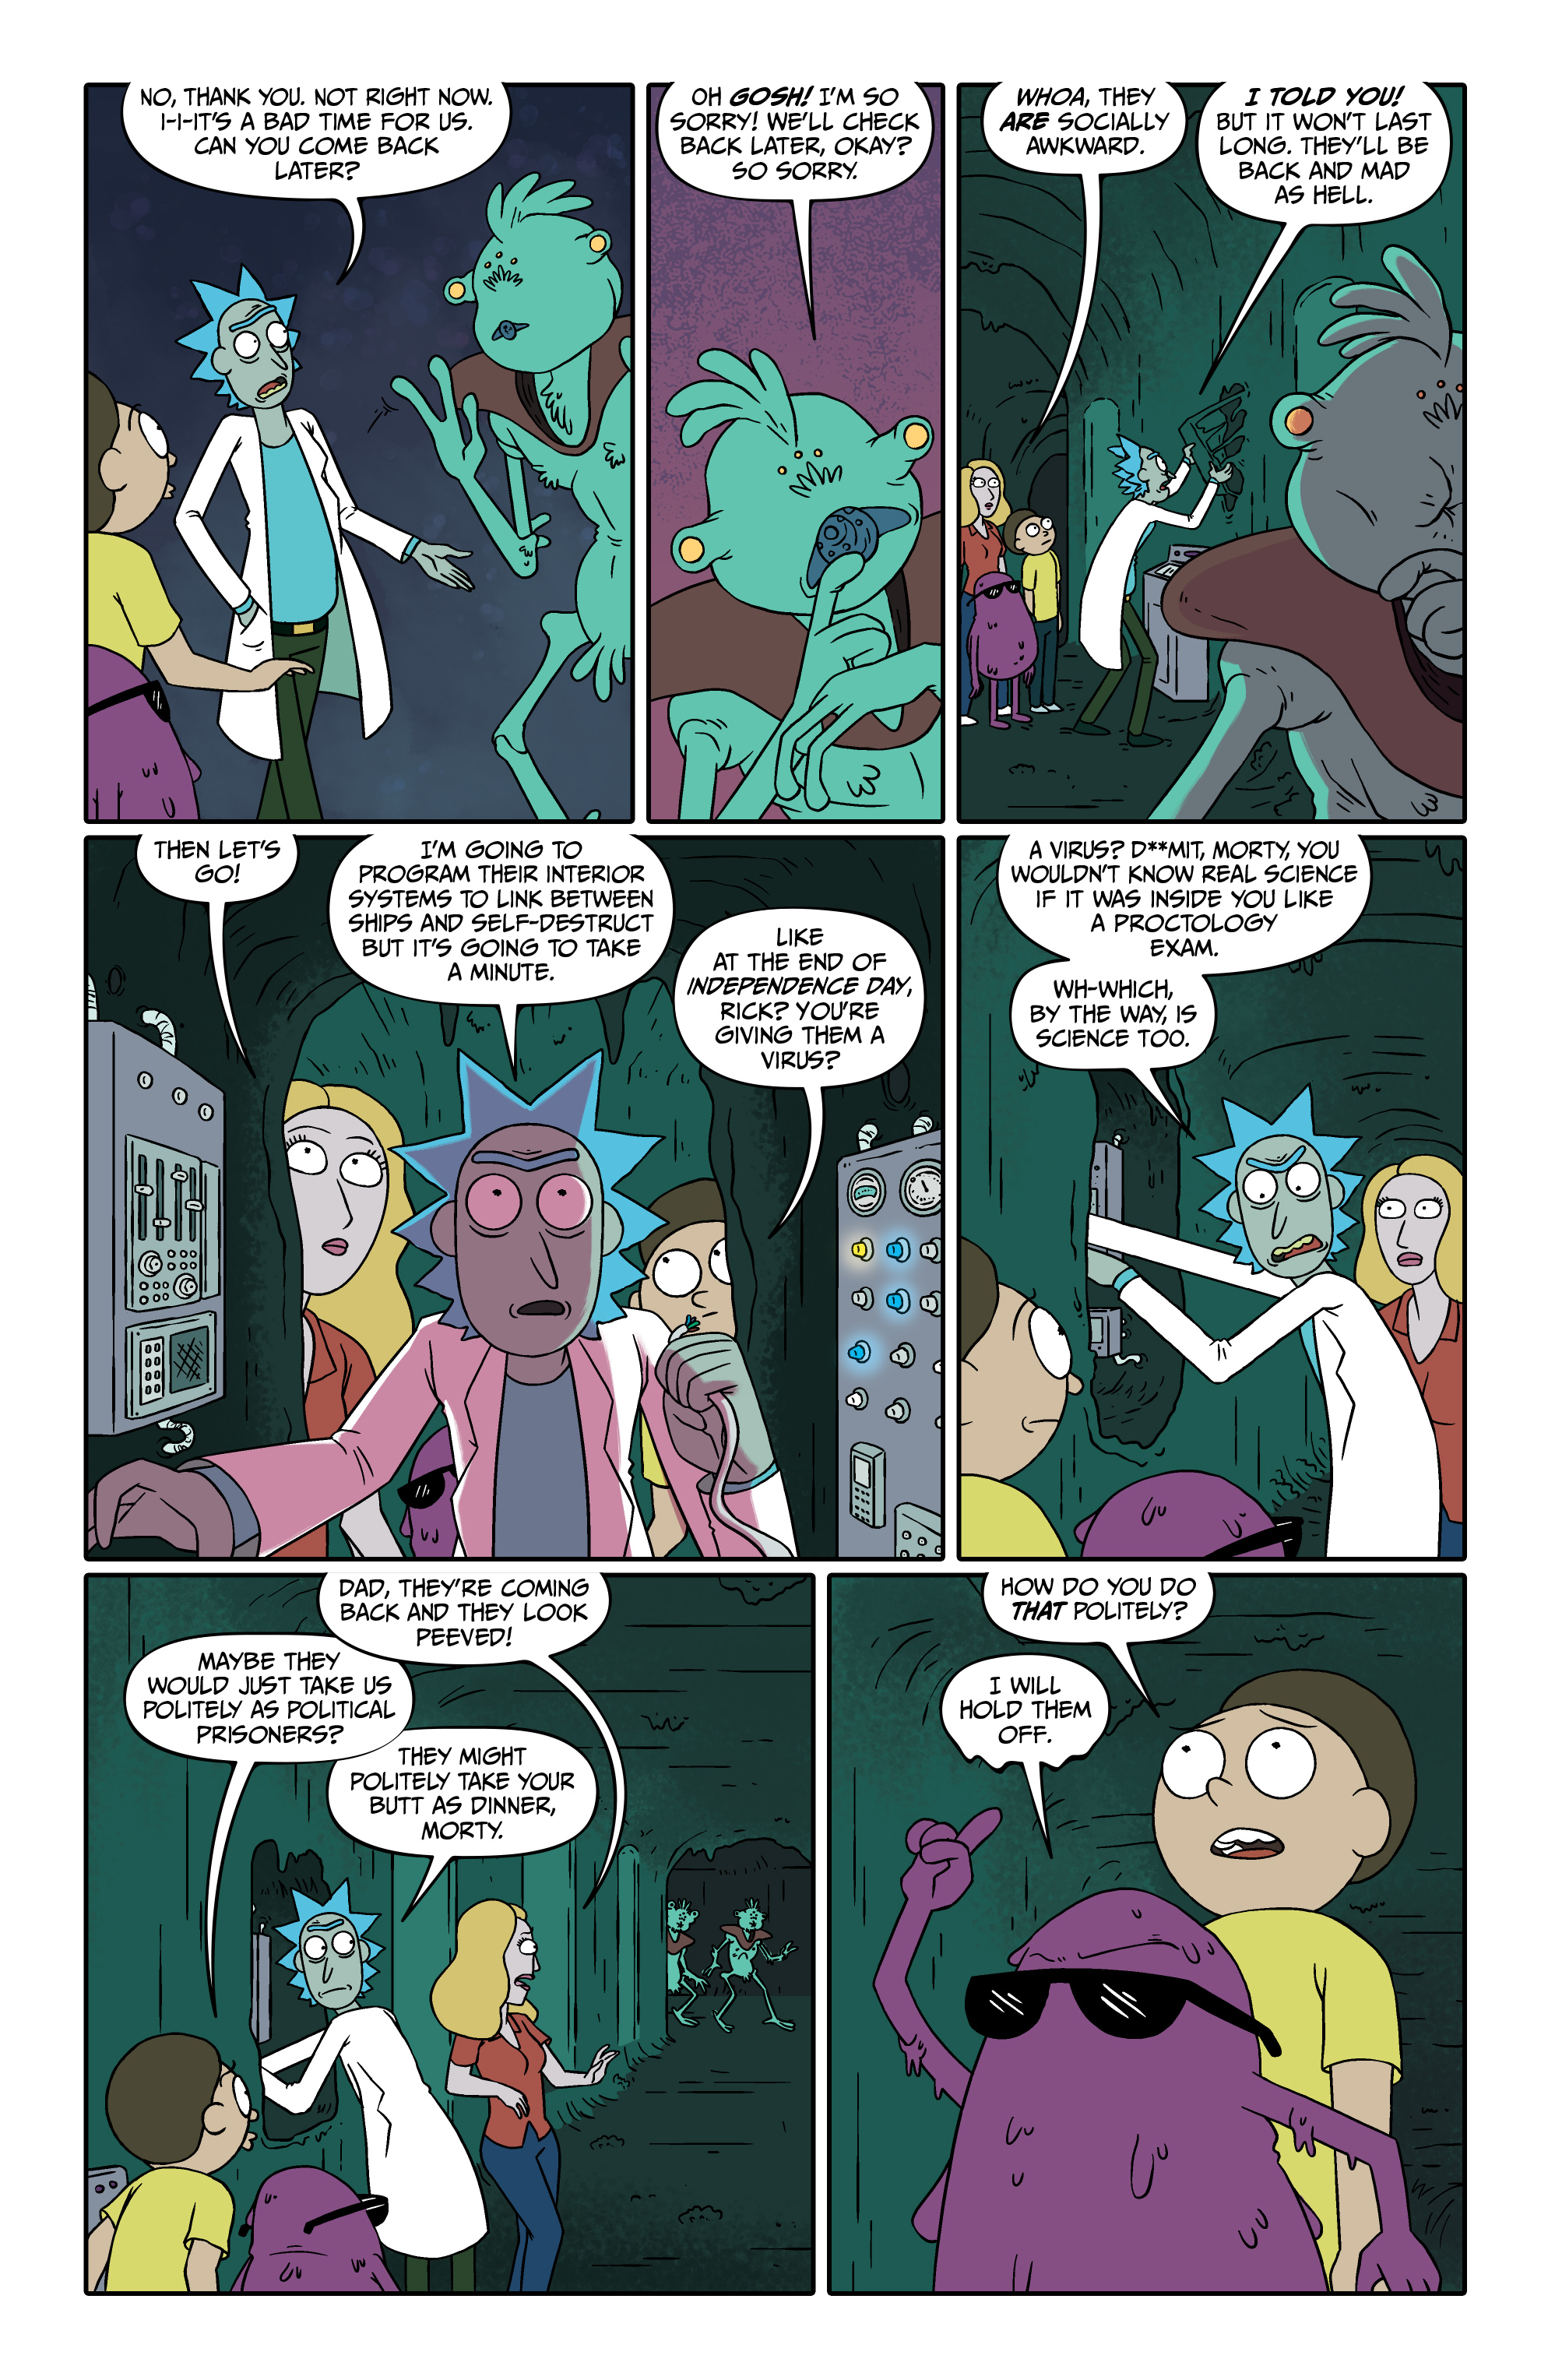 Read online Rick and Morty comic -  Issue #26 - 16